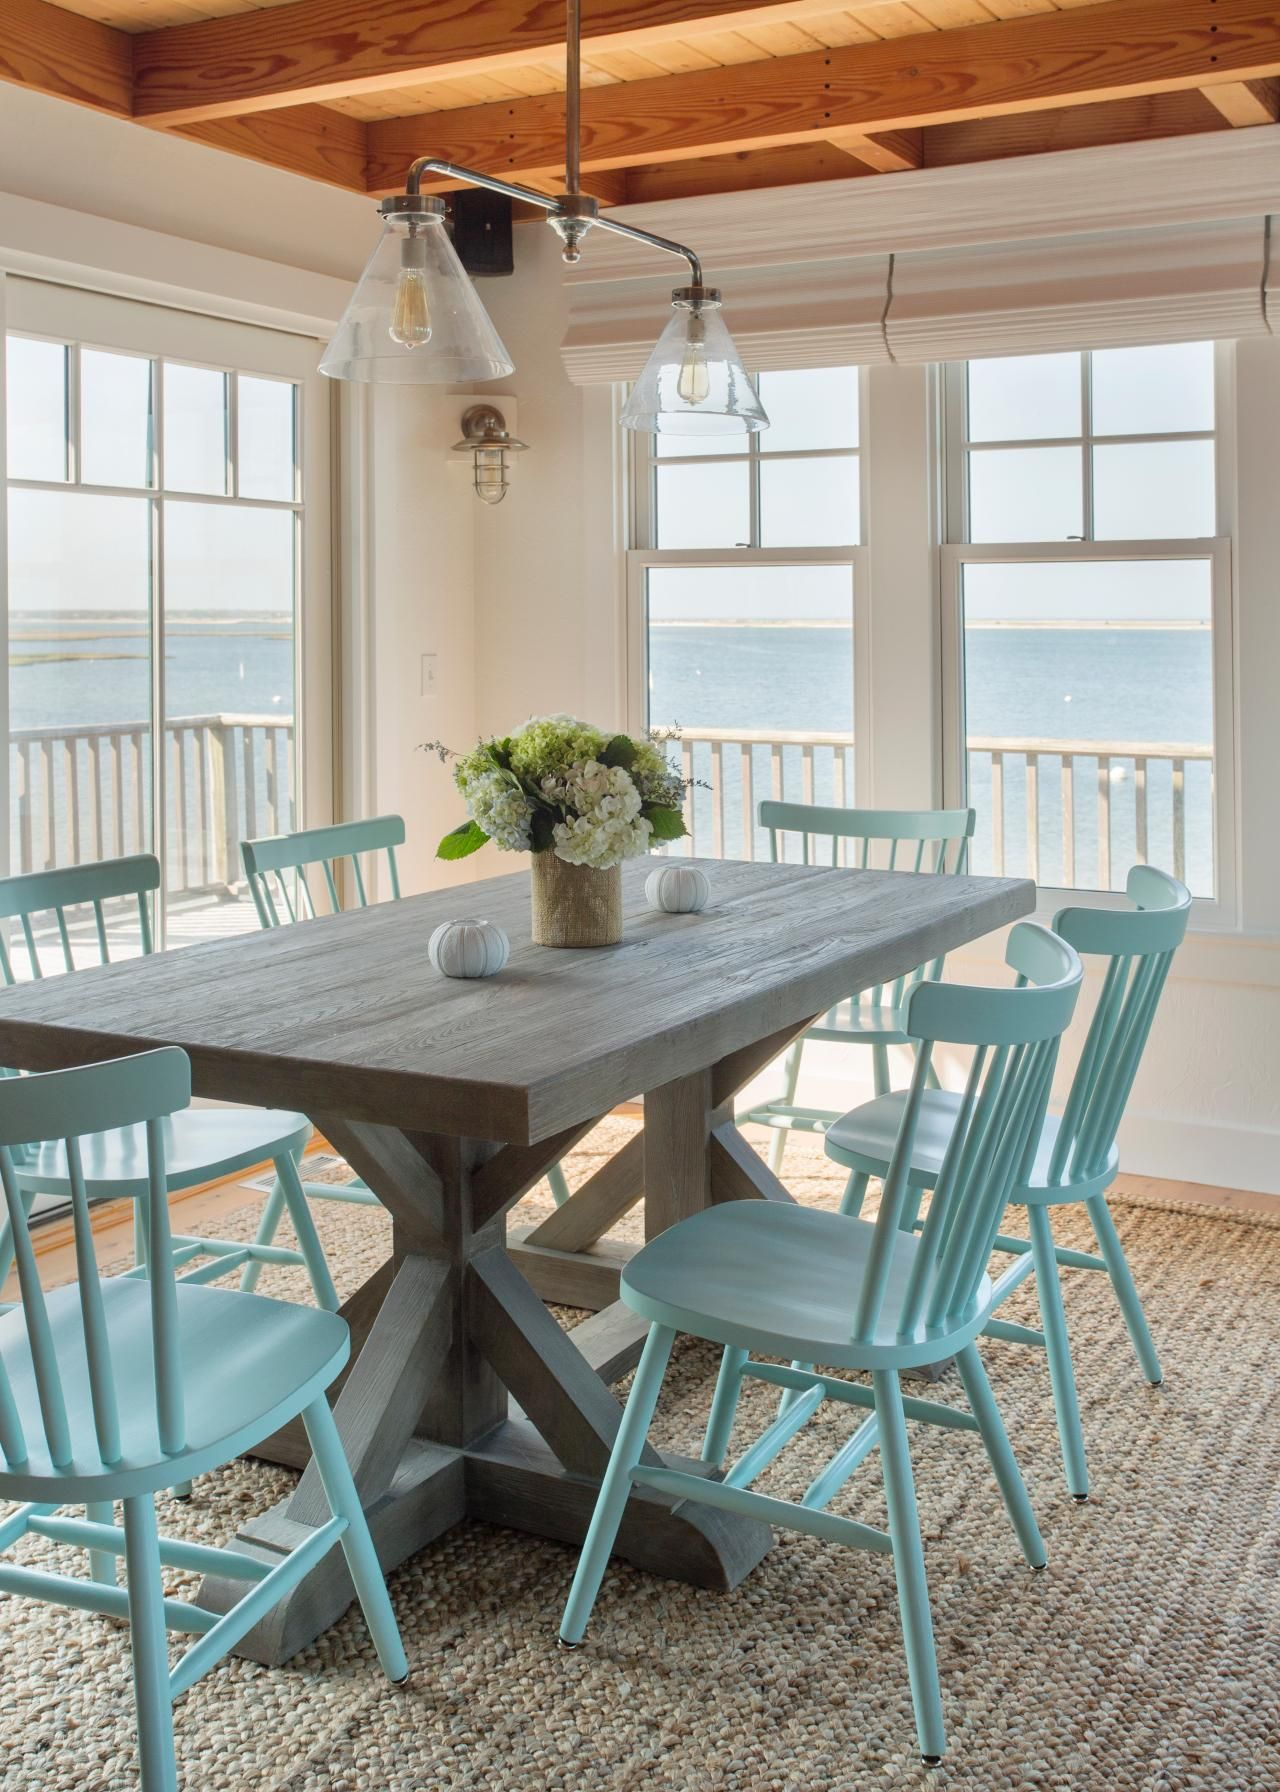 Coastal Dining Room With Beachy Blue Dining Chairs Hgtv Casa De Playa Casas De Playa Casa Playa Decoracion